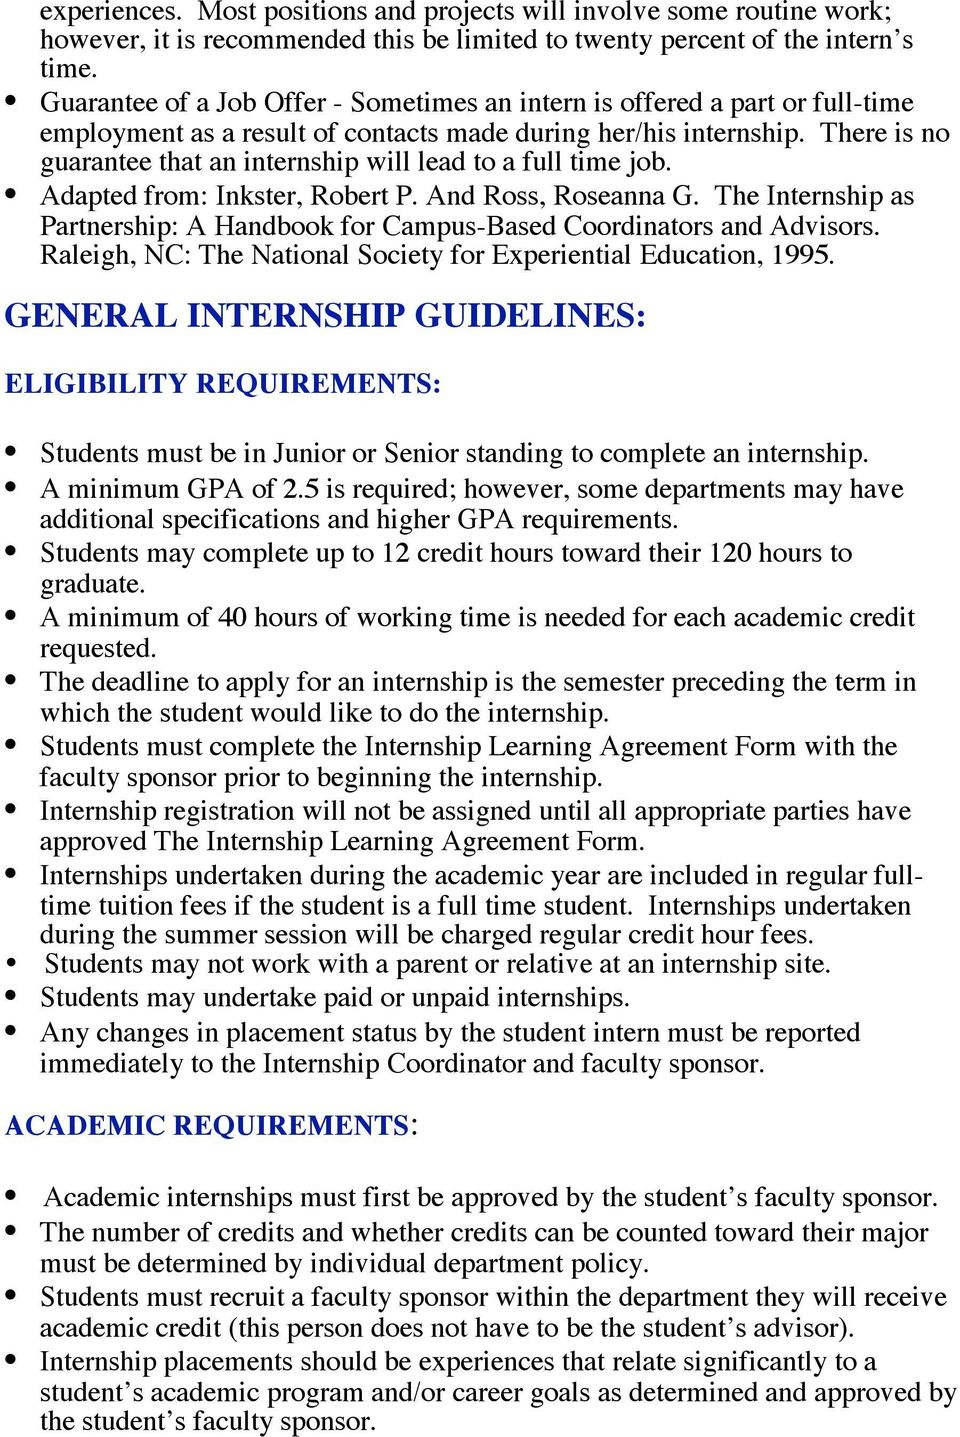 There is no guarantee that an internship will lead to a full time job. Adapted from: Inkster, Robert P. And Ross, Roseanna G.